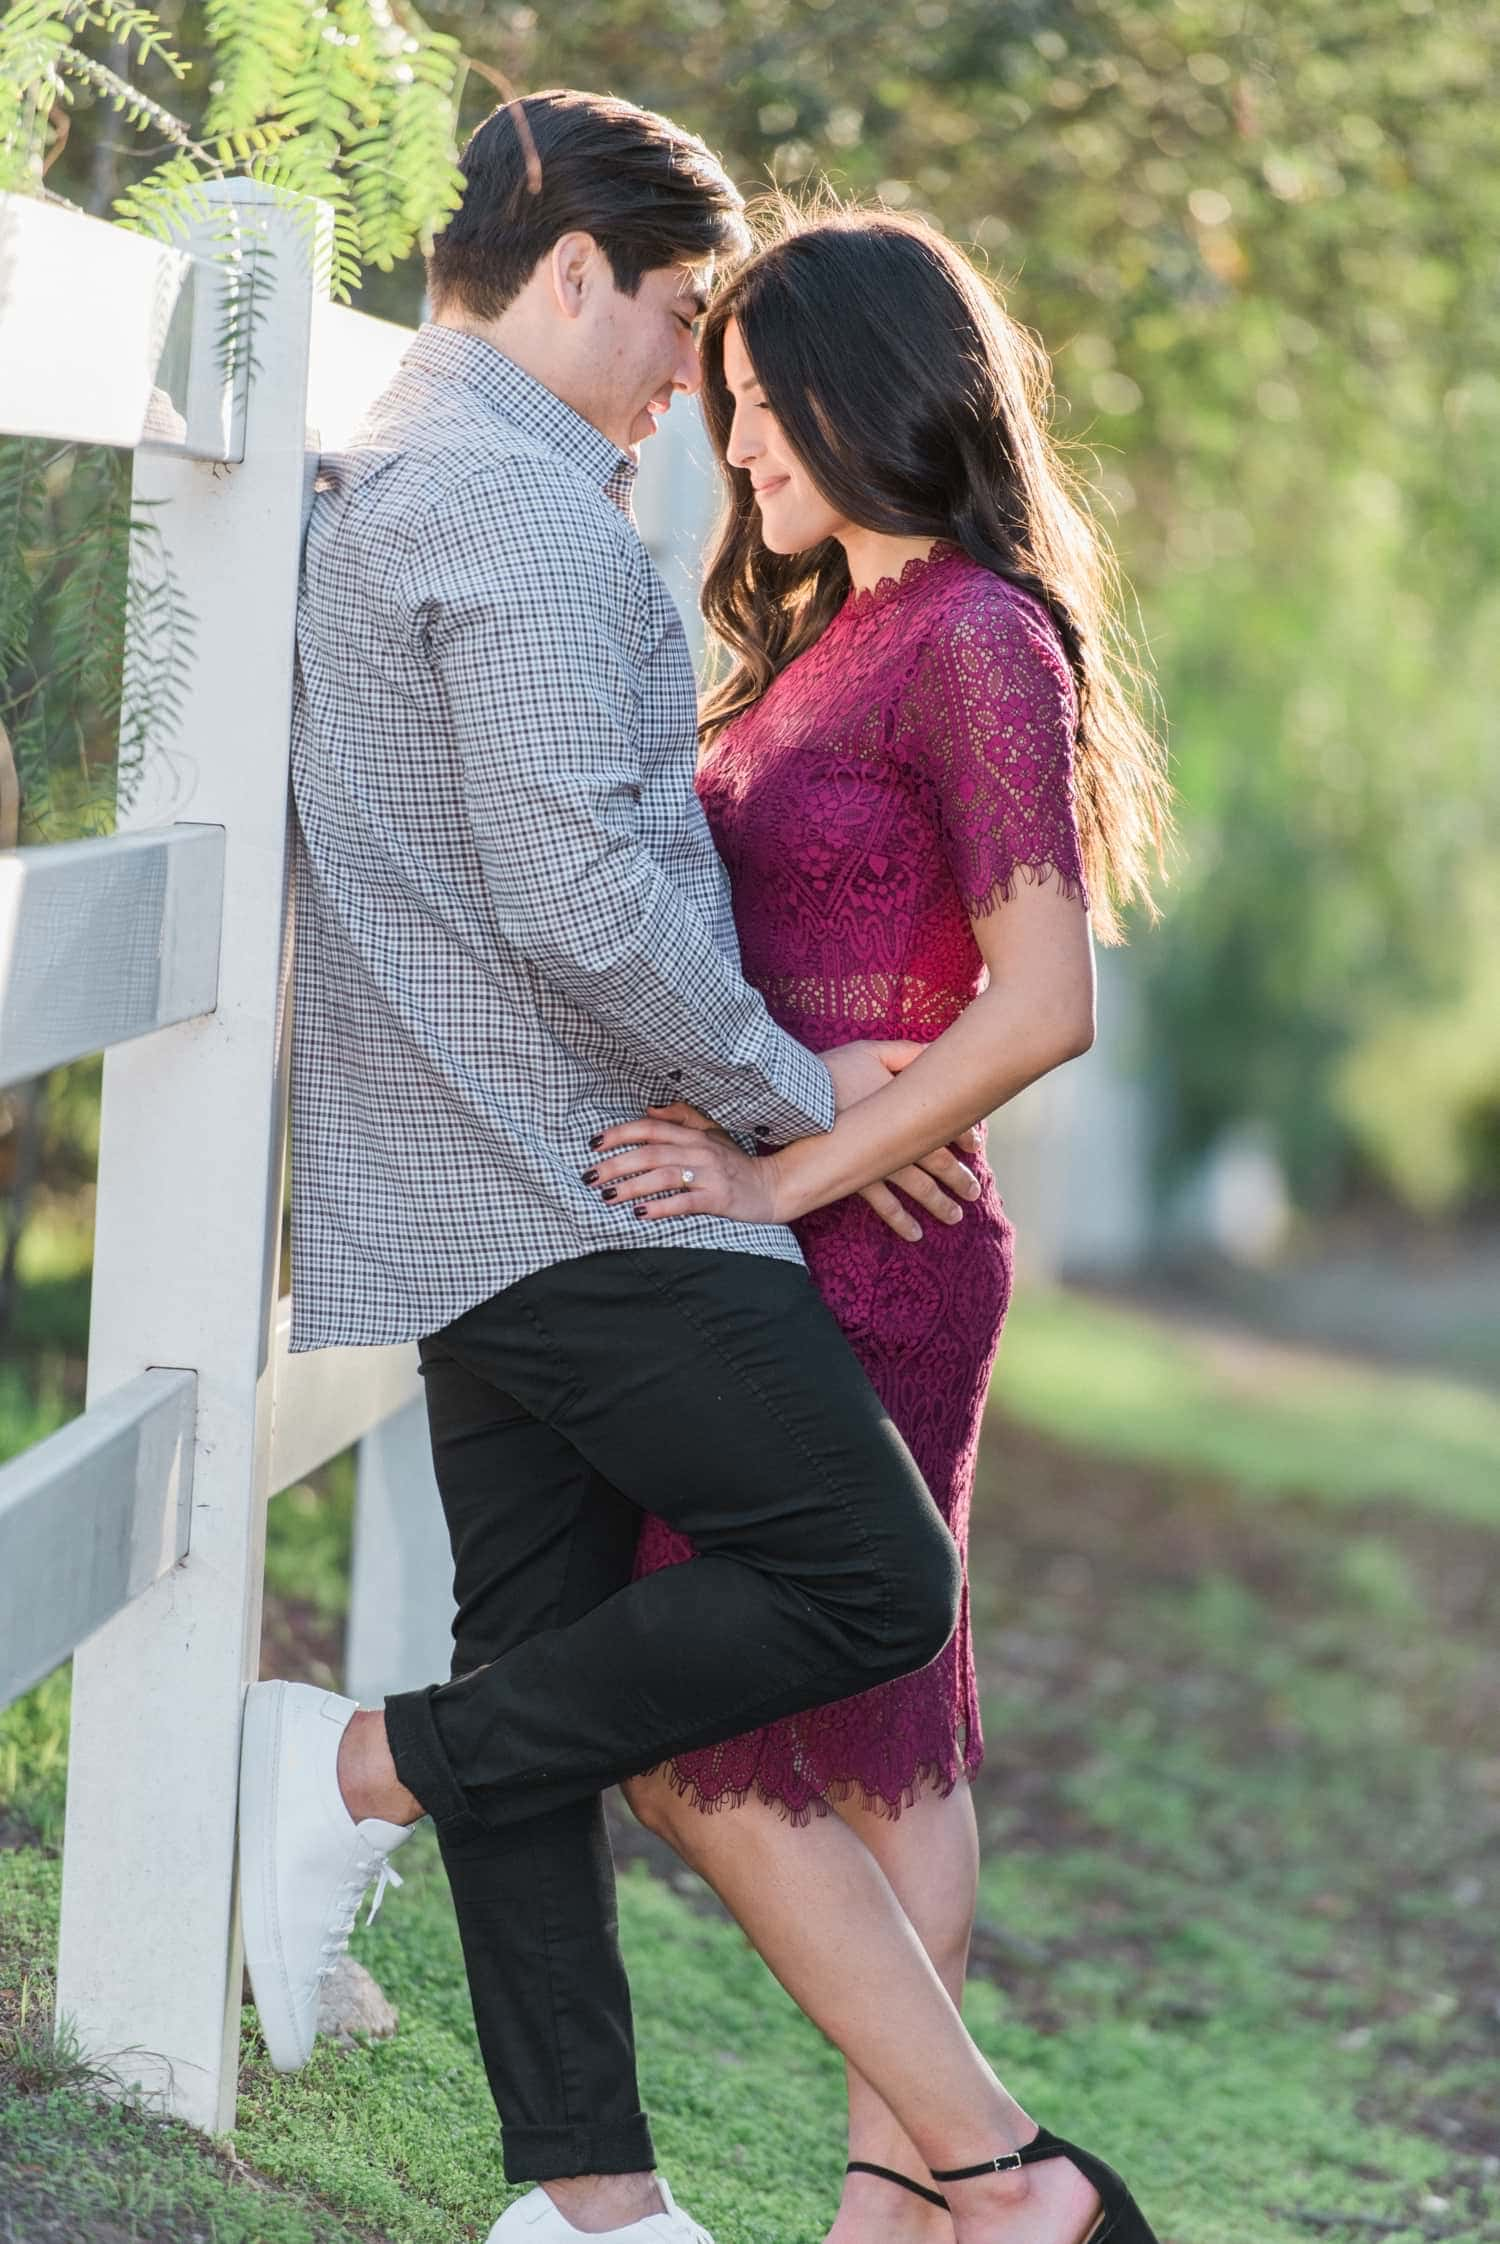 Couple leaning against a white fence.